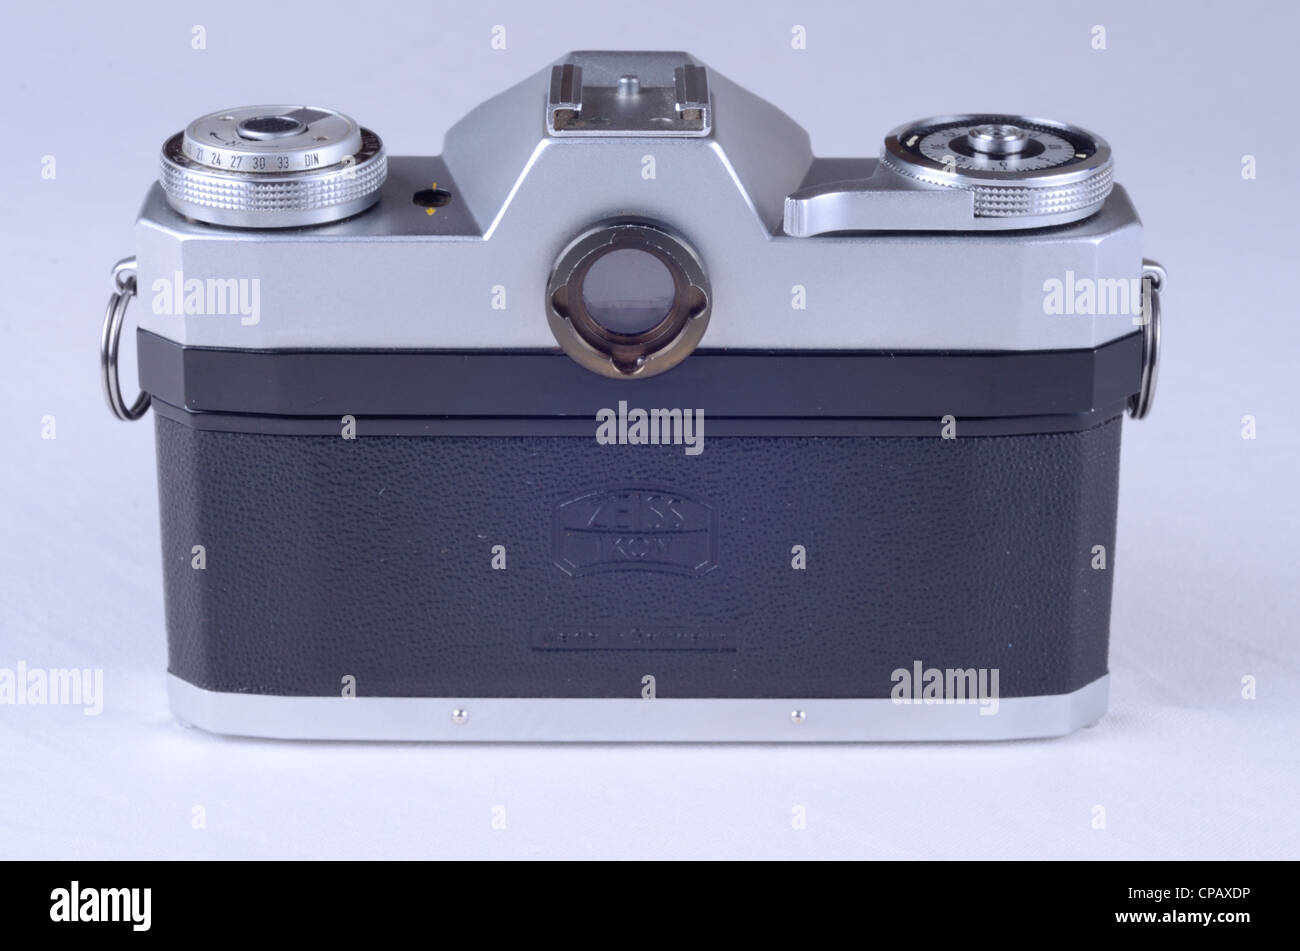 Zeiss Stock Photos & Zeiss Stock Images - Page 3 - Alamy